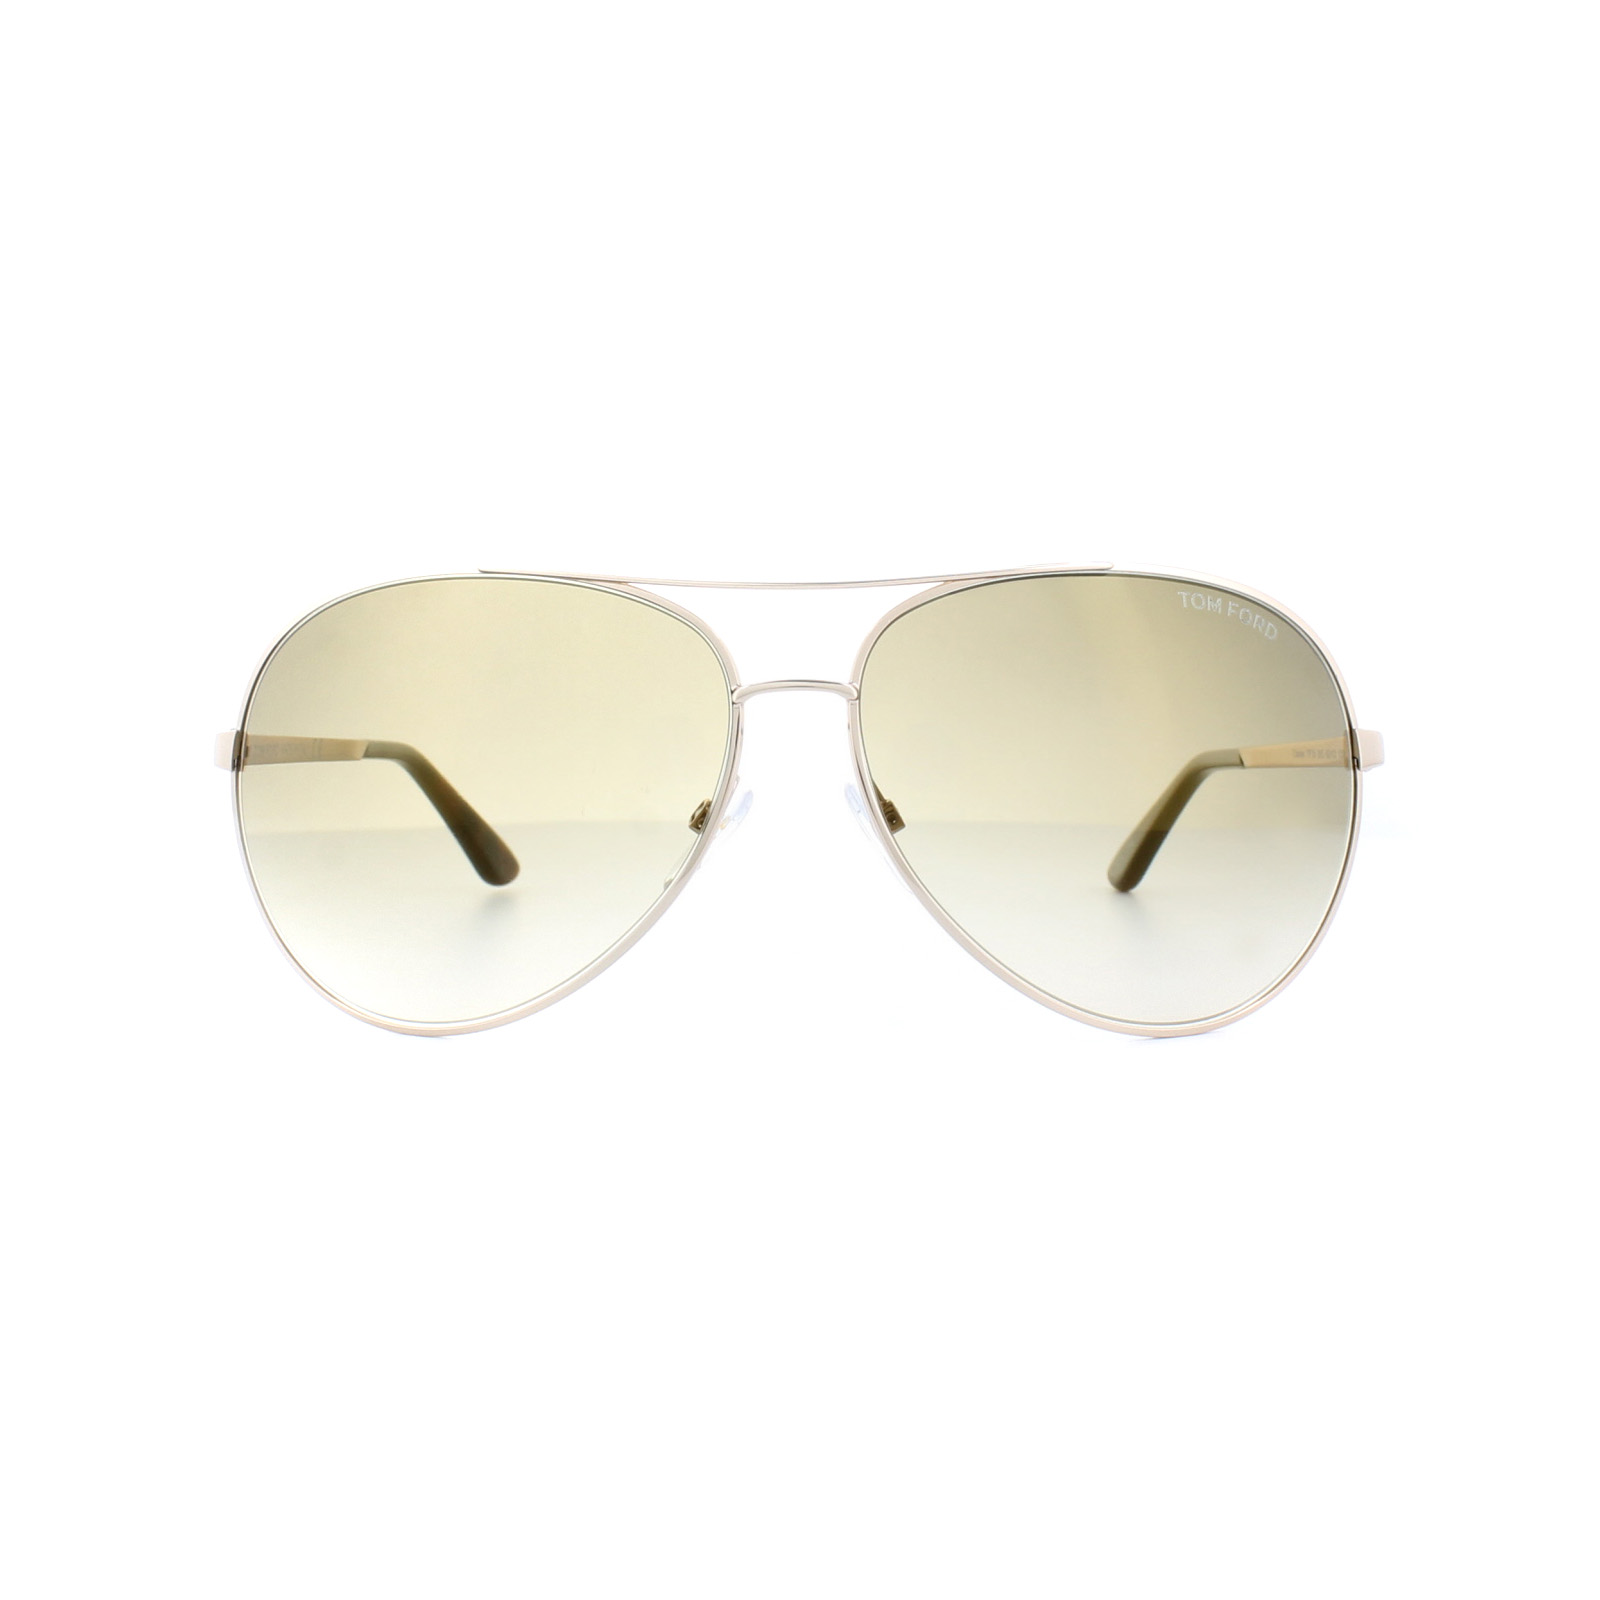 3f3fcdd2d355 Sentinel Tom Ford Sunglasses 0035 Charles 28G Shiny Rose Gold Brown Mirror